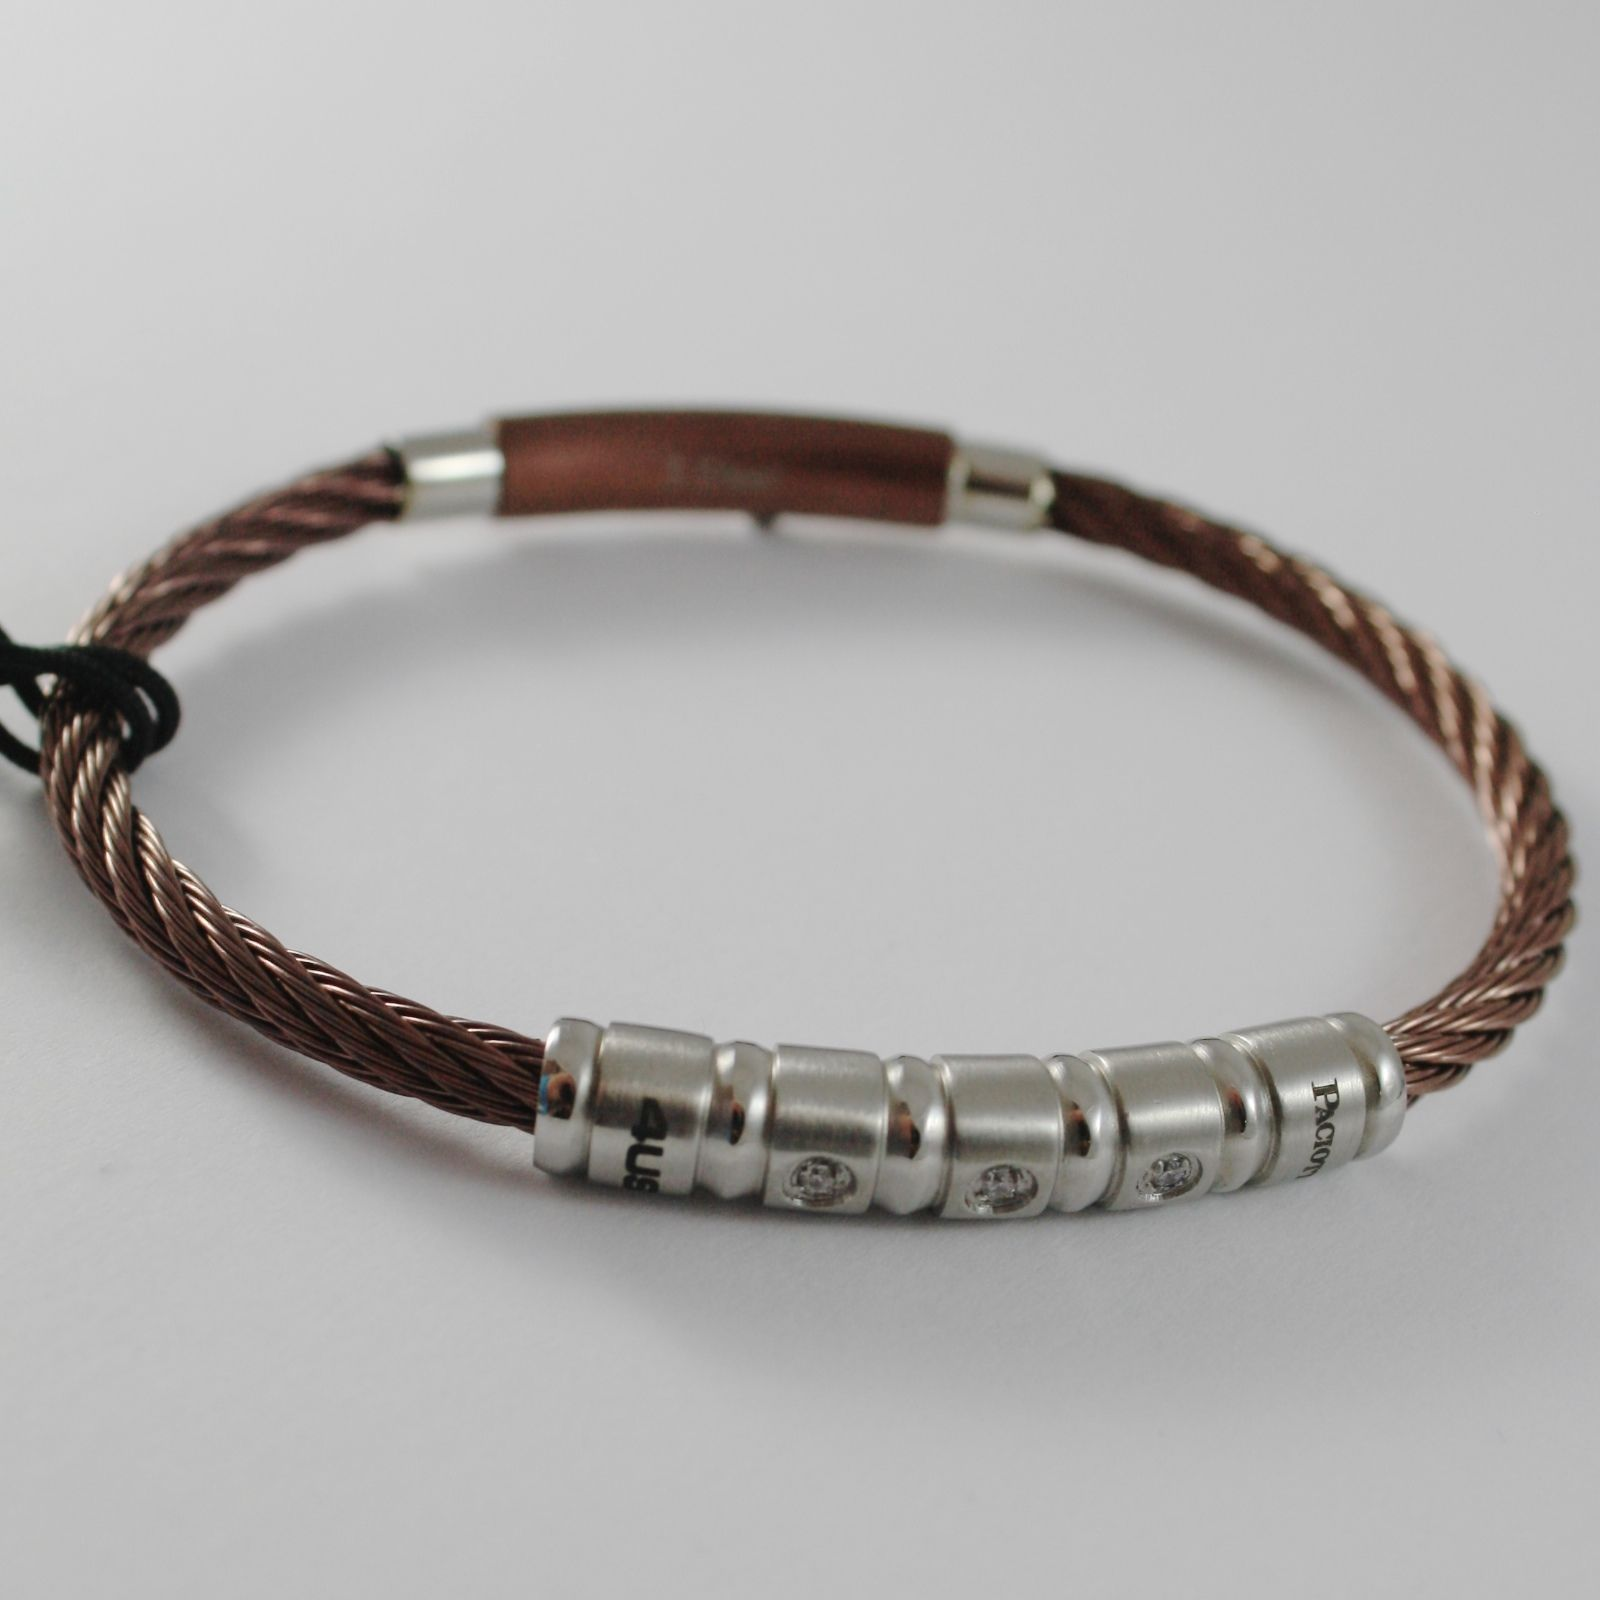 STAINLESS BROWN STEEL WIRE CABLE RIGID ZIRCONIA BRACELET 4US BY CESARE PACIOTTI